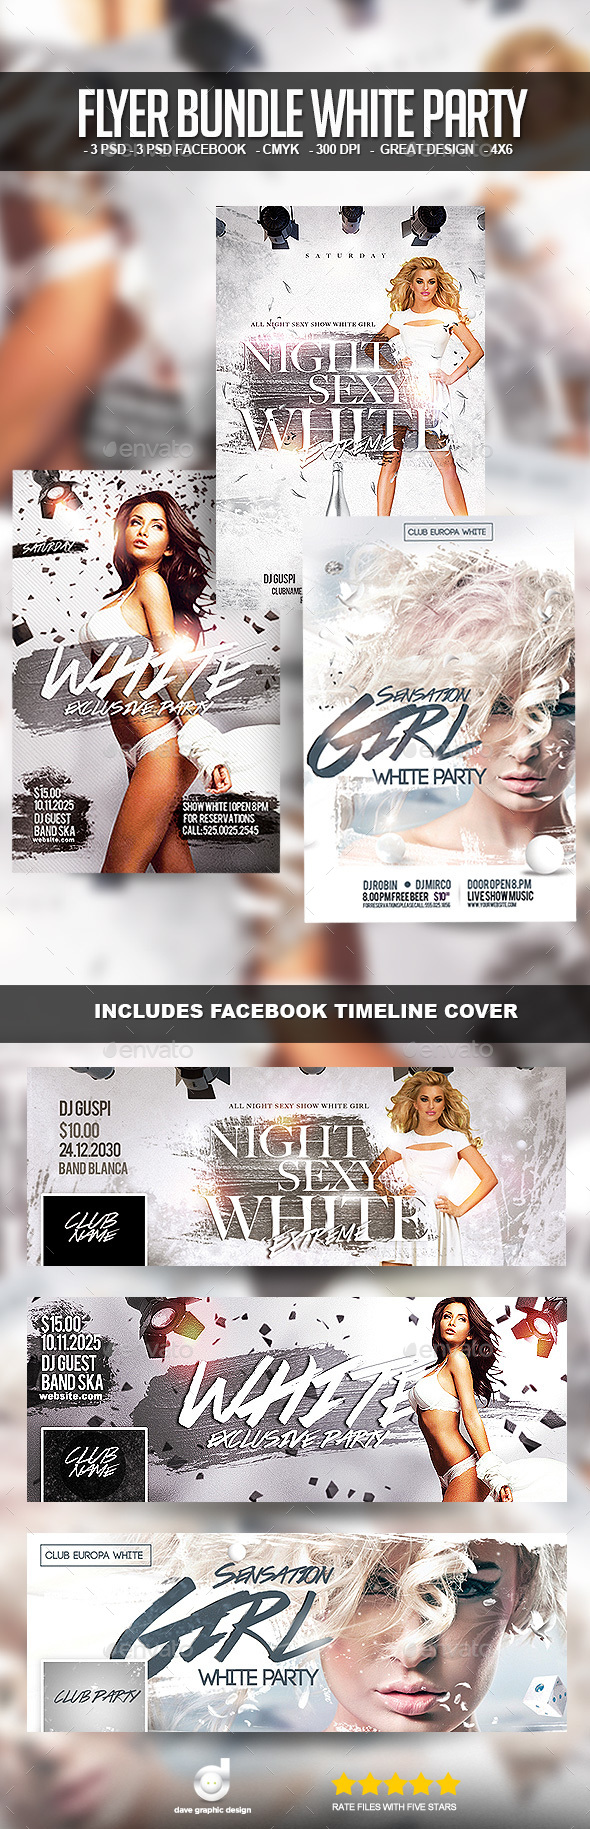 Flyer Bundle White Party - Clubs & Parties Events